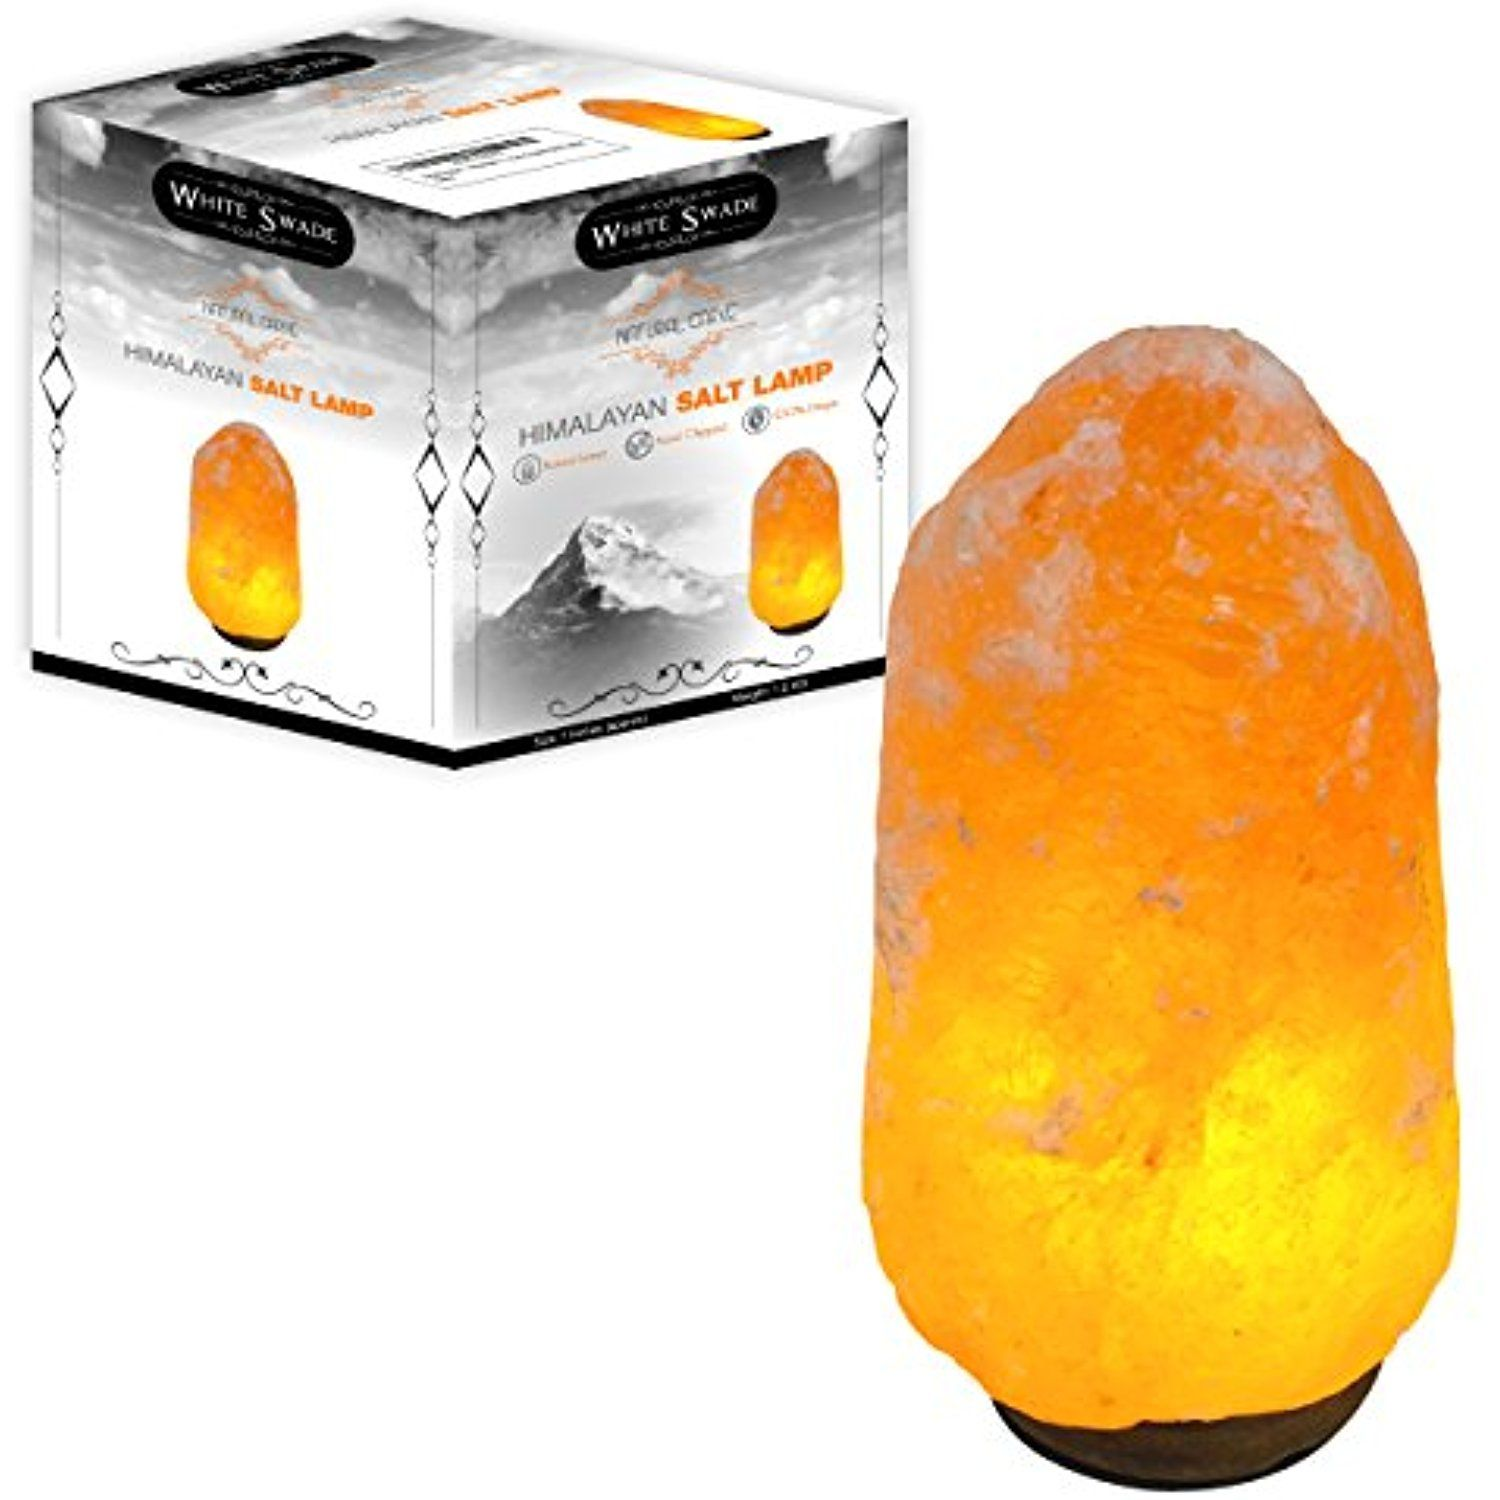 "Genuine Himalayan Salt Lamp Gorgeous Whiteswade 7"" Himalayan Salt Lamp With Dimmer Switch Genuine Neem Decorating Design"